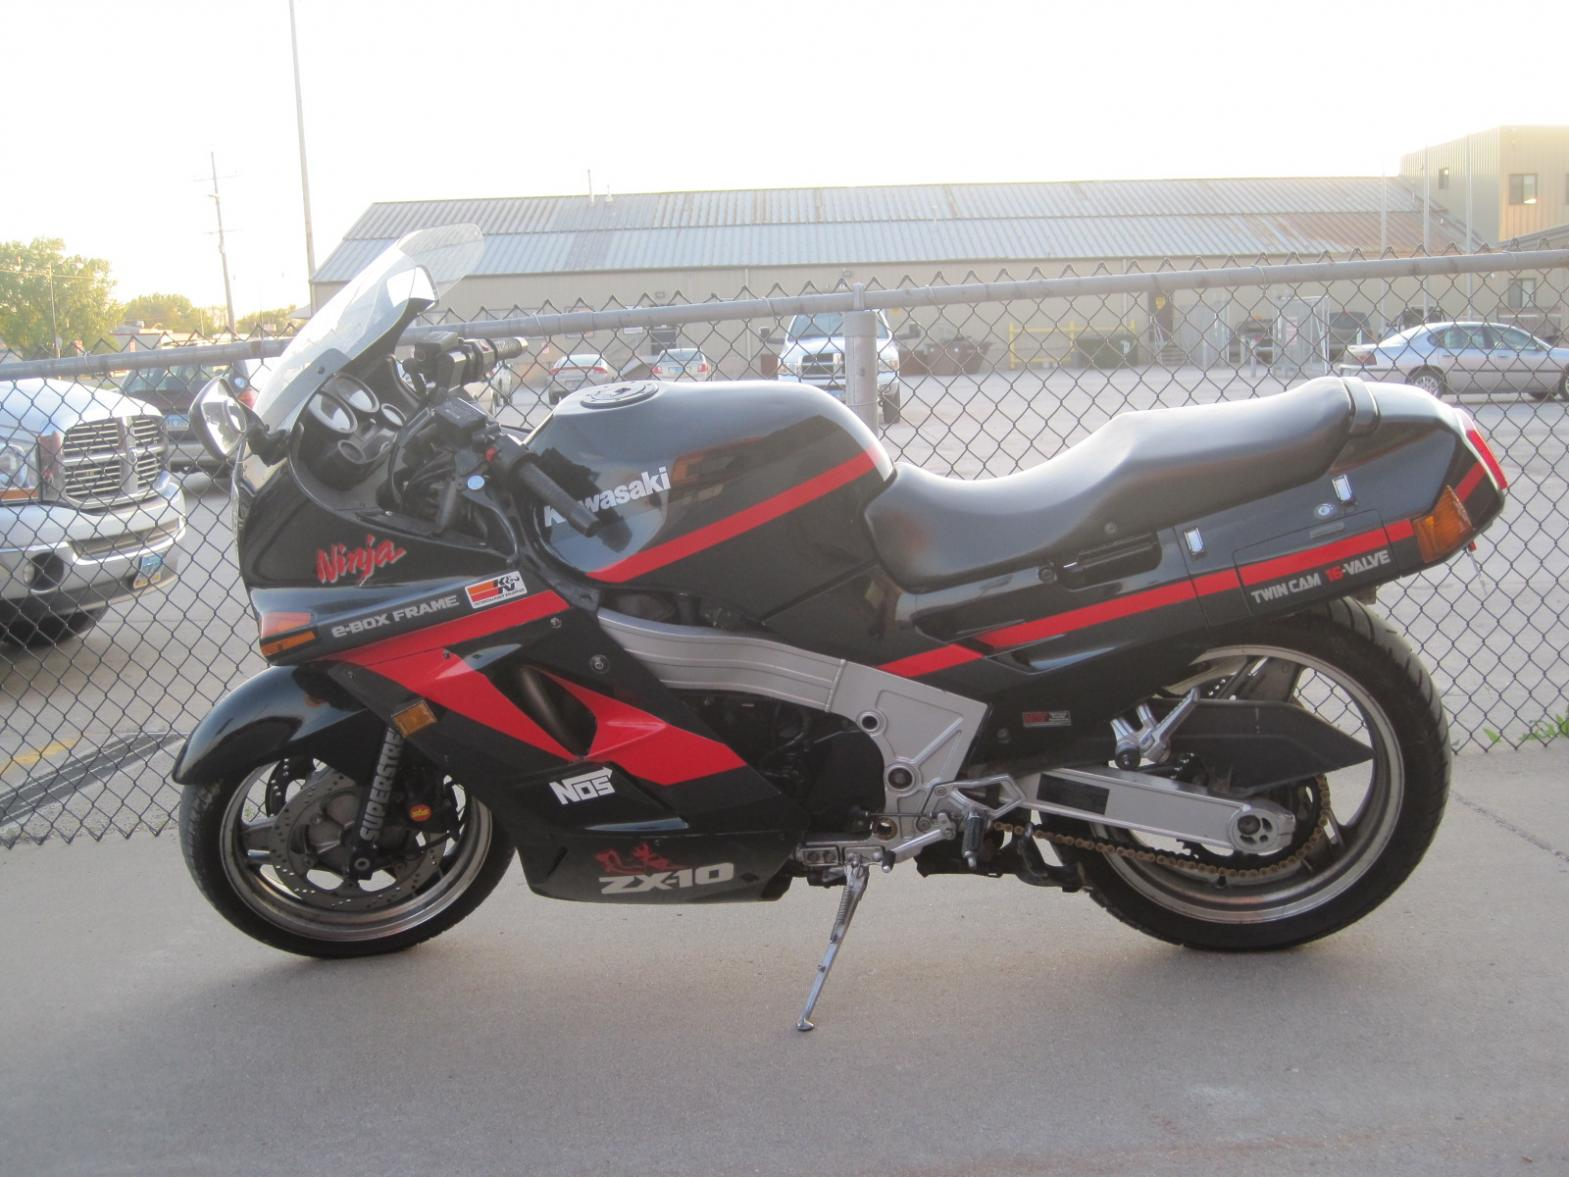 Click image for larger version  Name:ZX10.jpg Views:44 Size:186.1 KB ID:128606